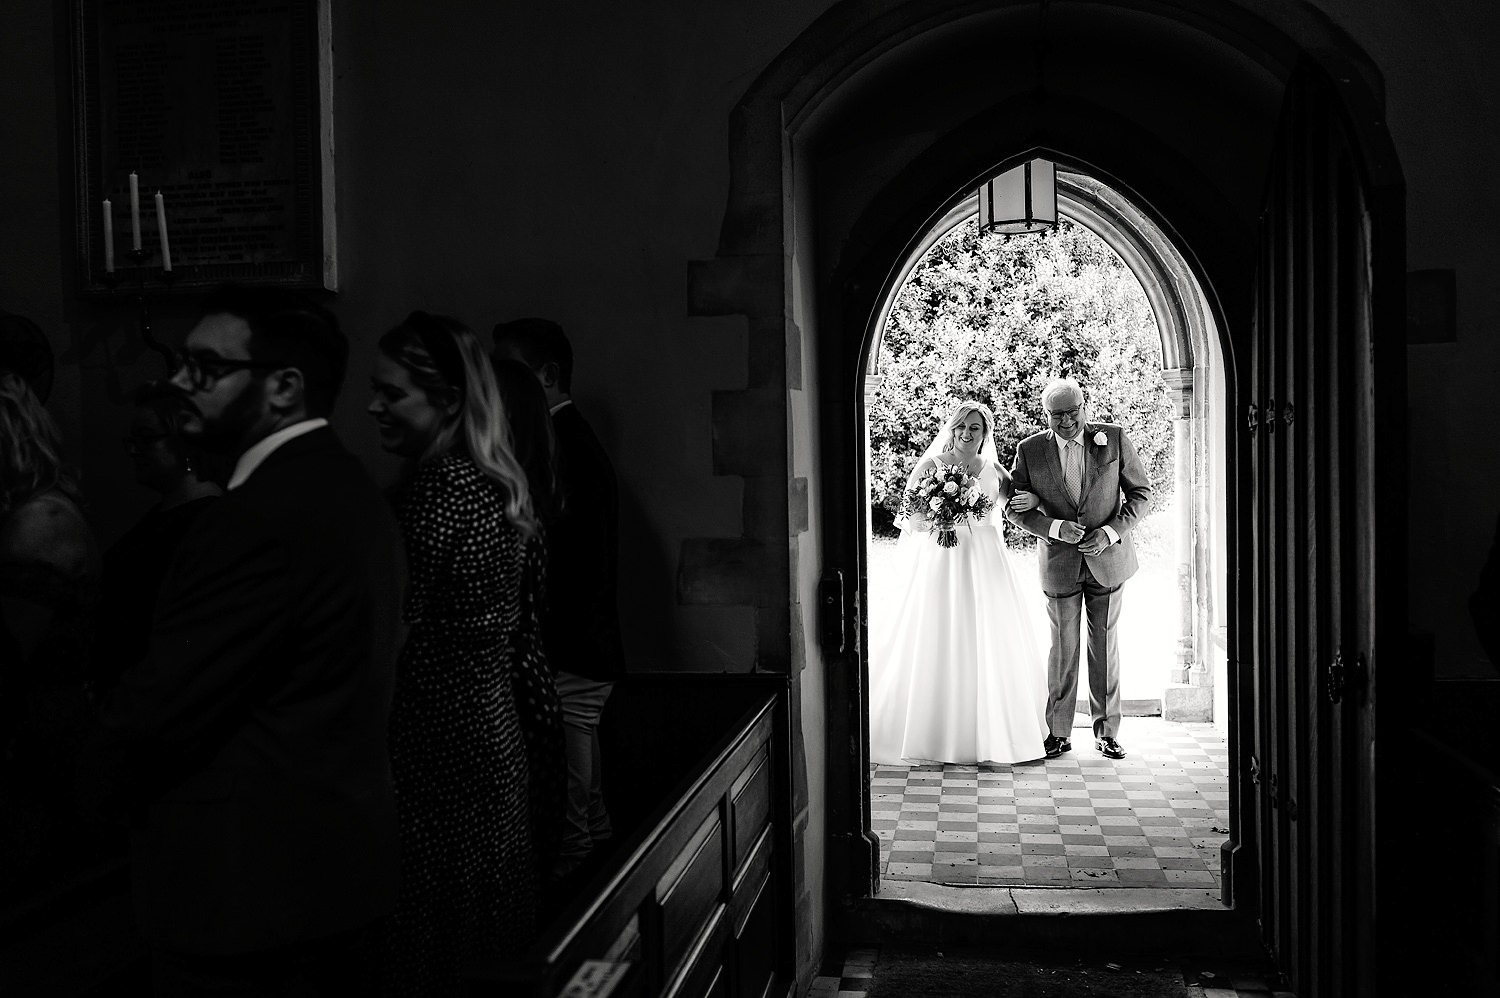 father and bride at church ceremony